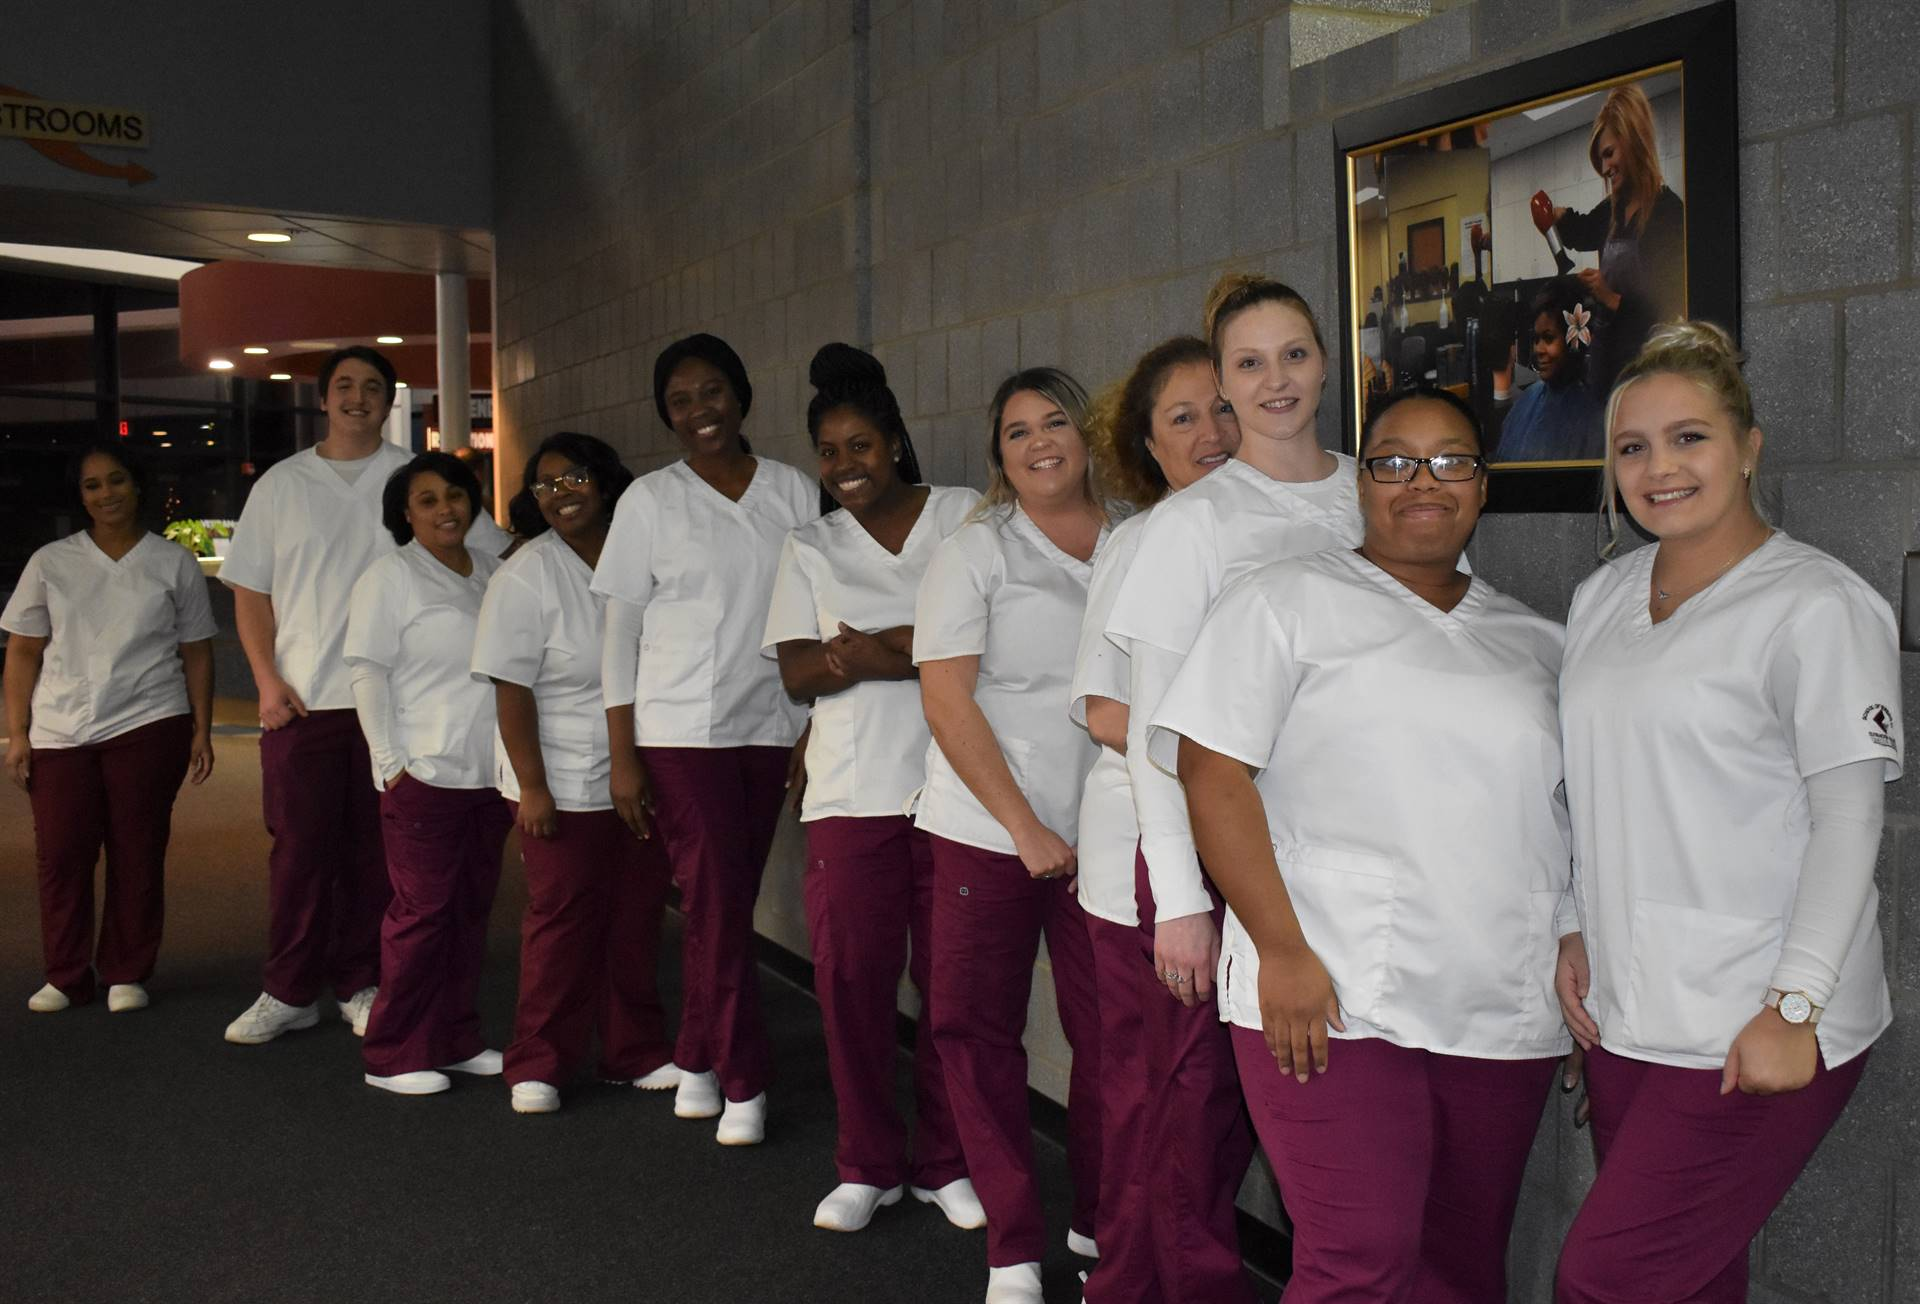 nursing students lined up in hallway